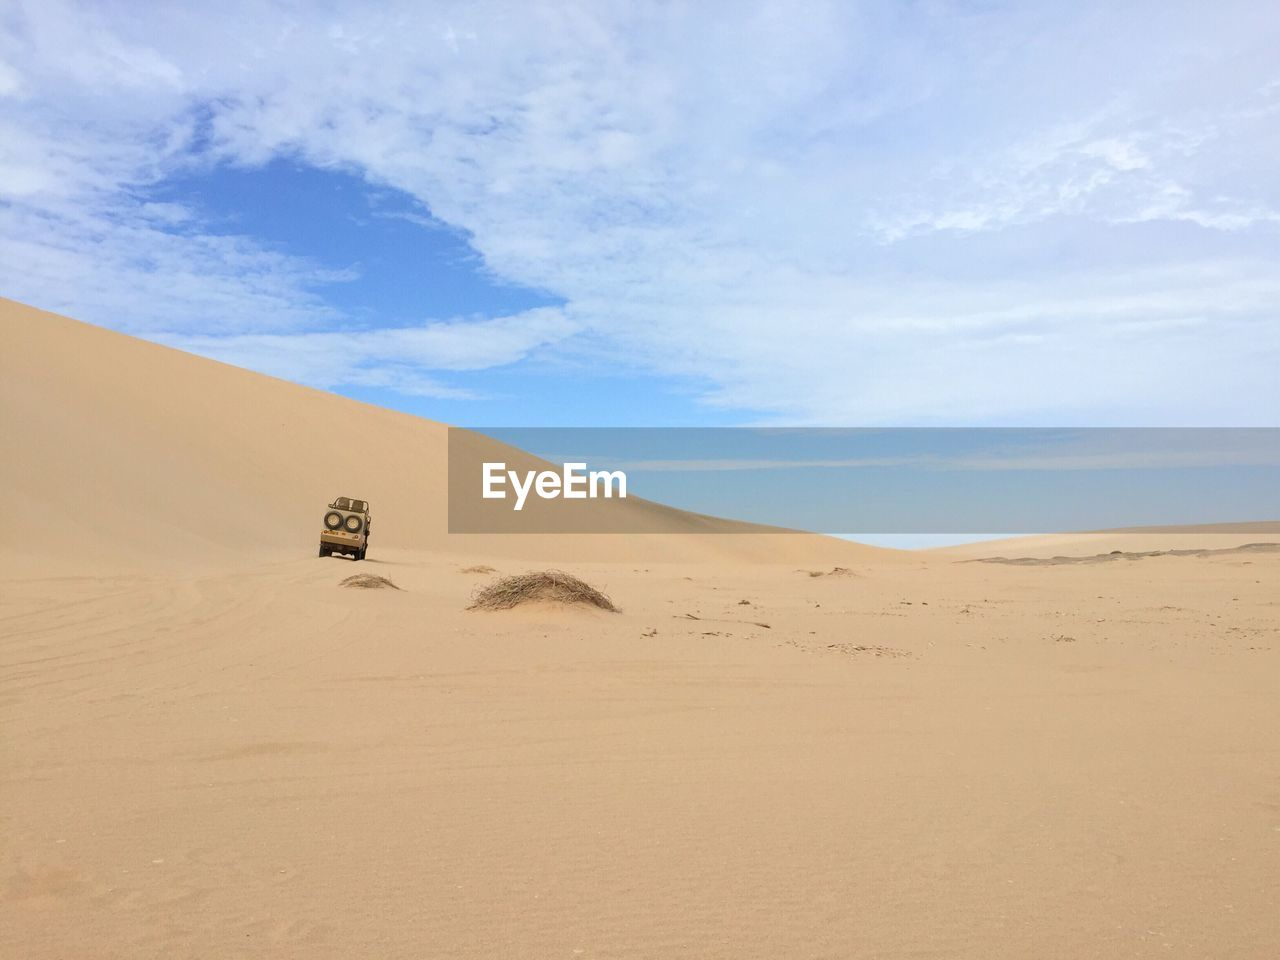 desert, land, sand, scenics - nature, sky, arid climate, climate, tranquil scene, landscape, tranquility, sand dune, cloud - sky, beauty in nature, environment, nature, non-urban scene, remote, day, no people, extreme terrain, outdoors